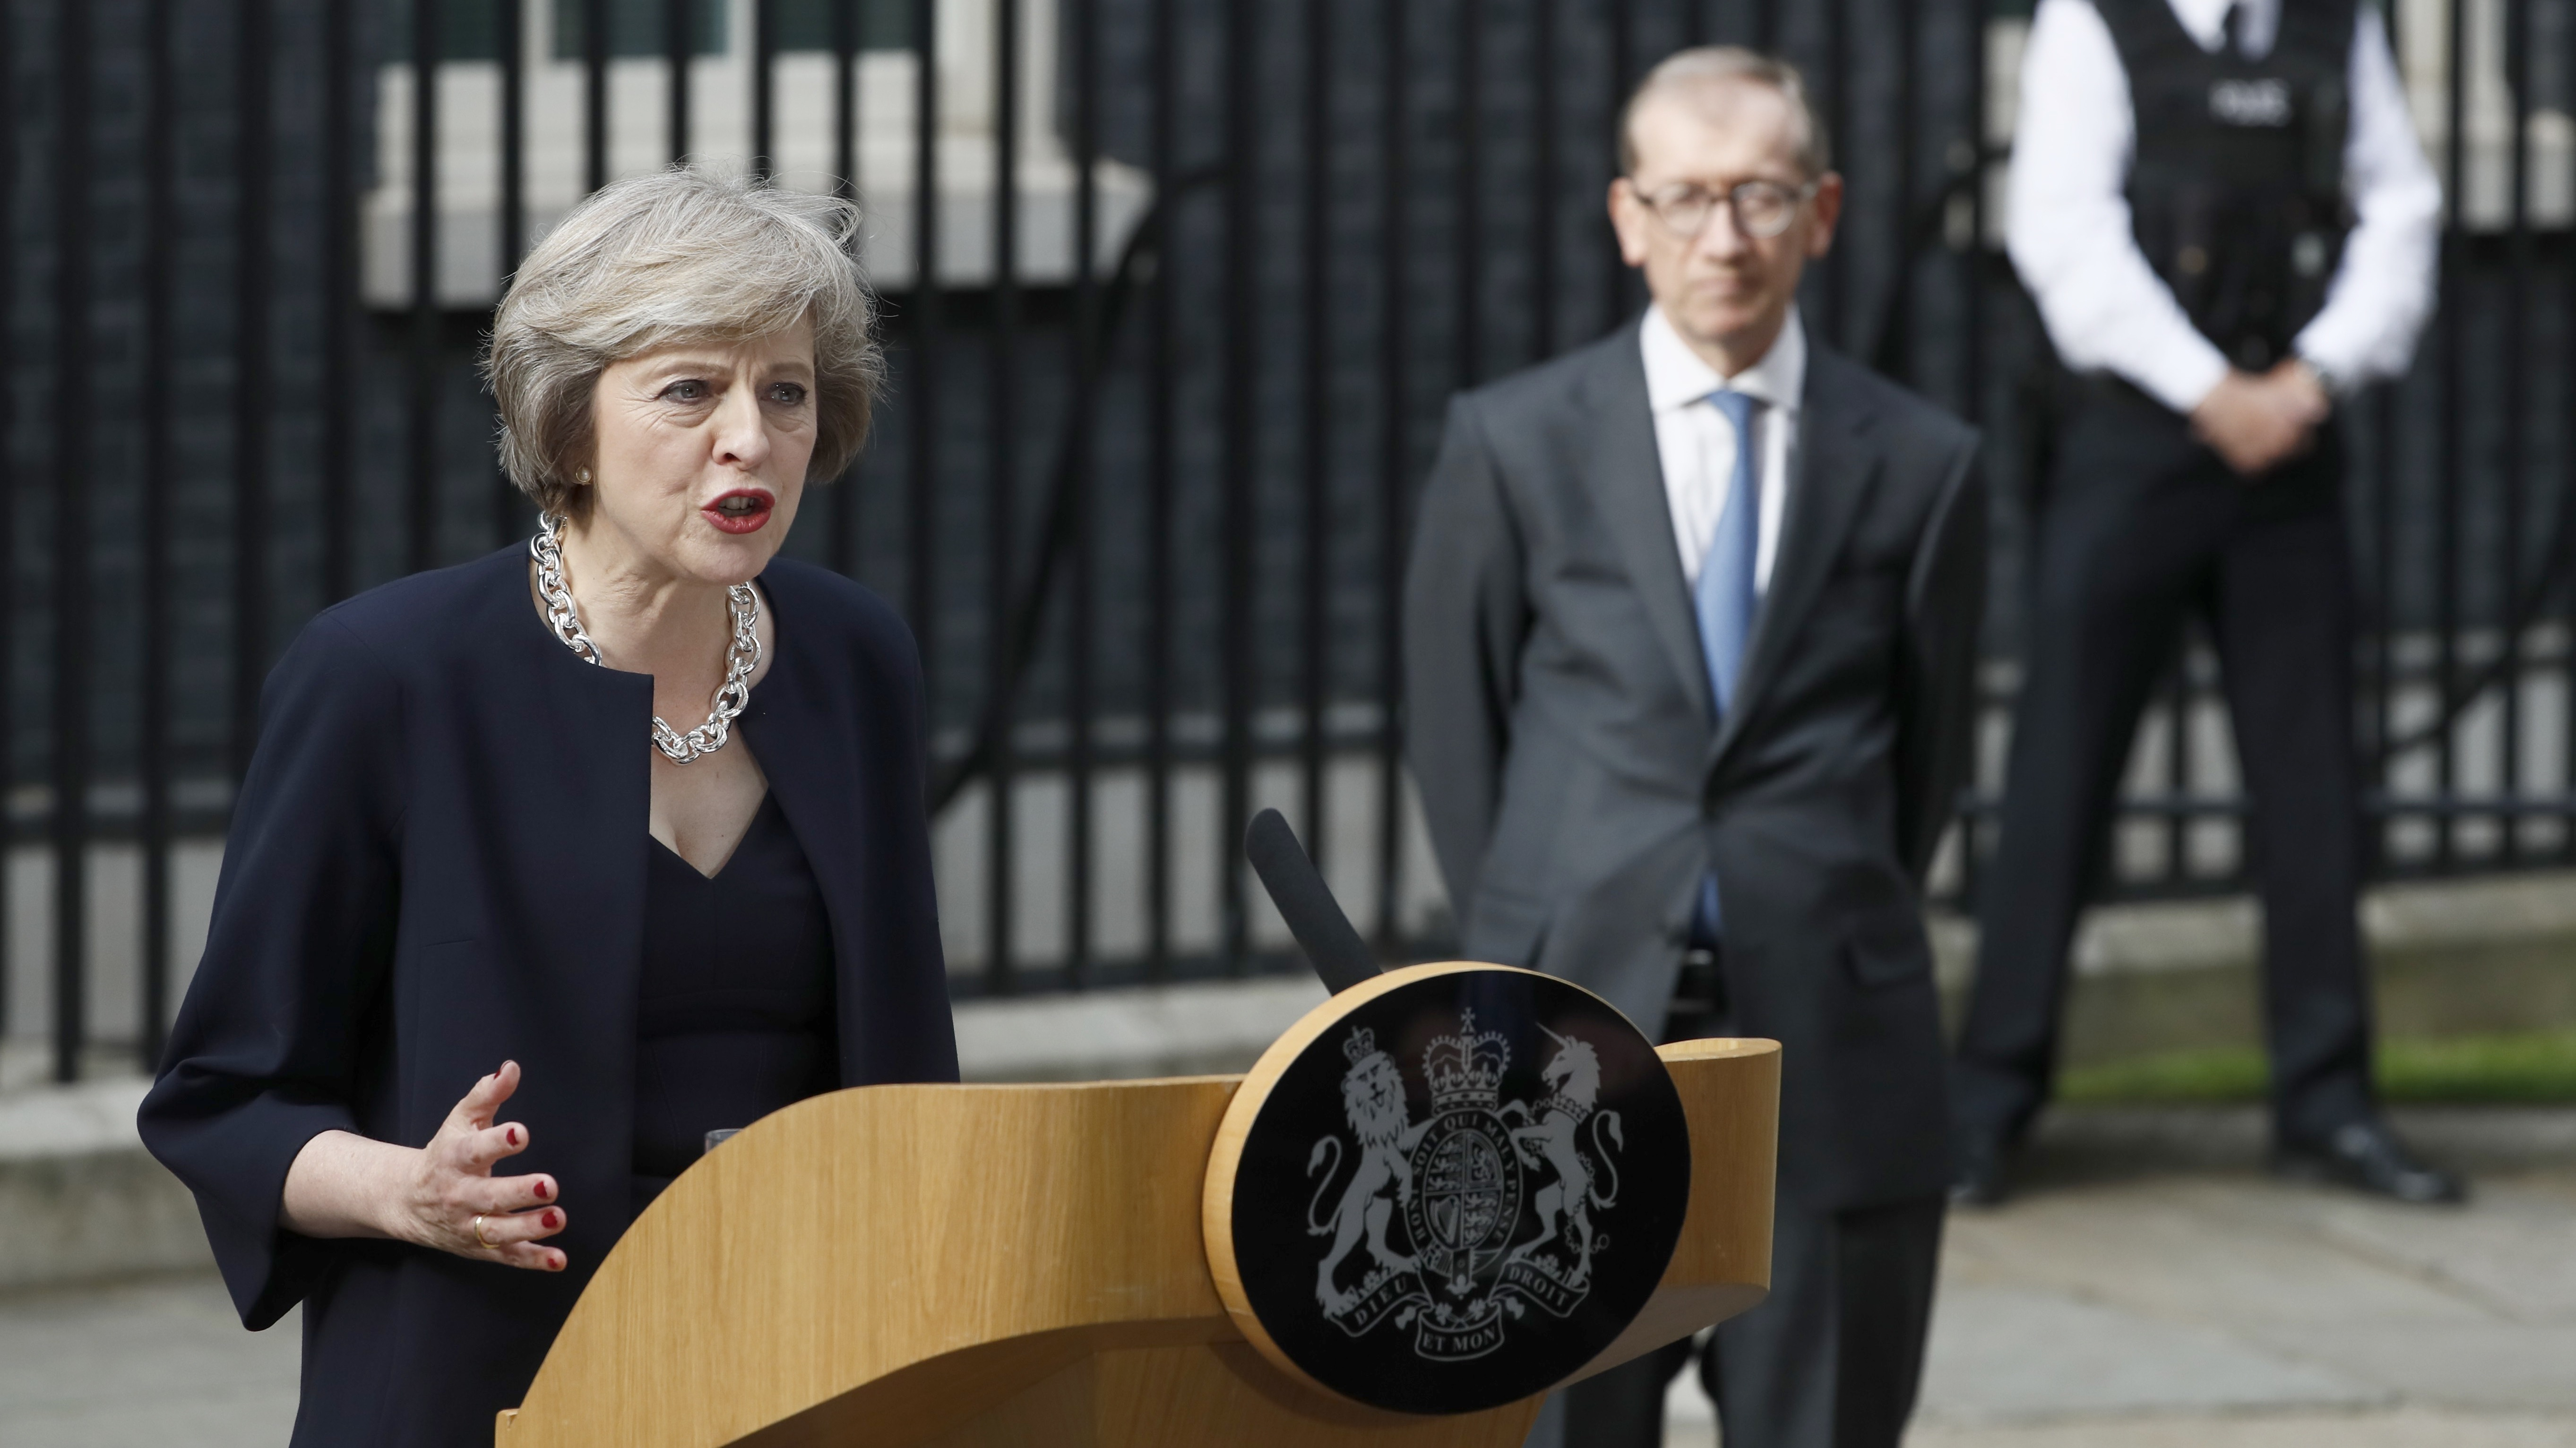 Britain's Prime Minister, Theresa May, watched by husband Philip, speaks to the media outside number 10 Downing Street, in central London, Britain July 13, 2016.    REUTERS/Stefan Wermuth  - RTSHRW6